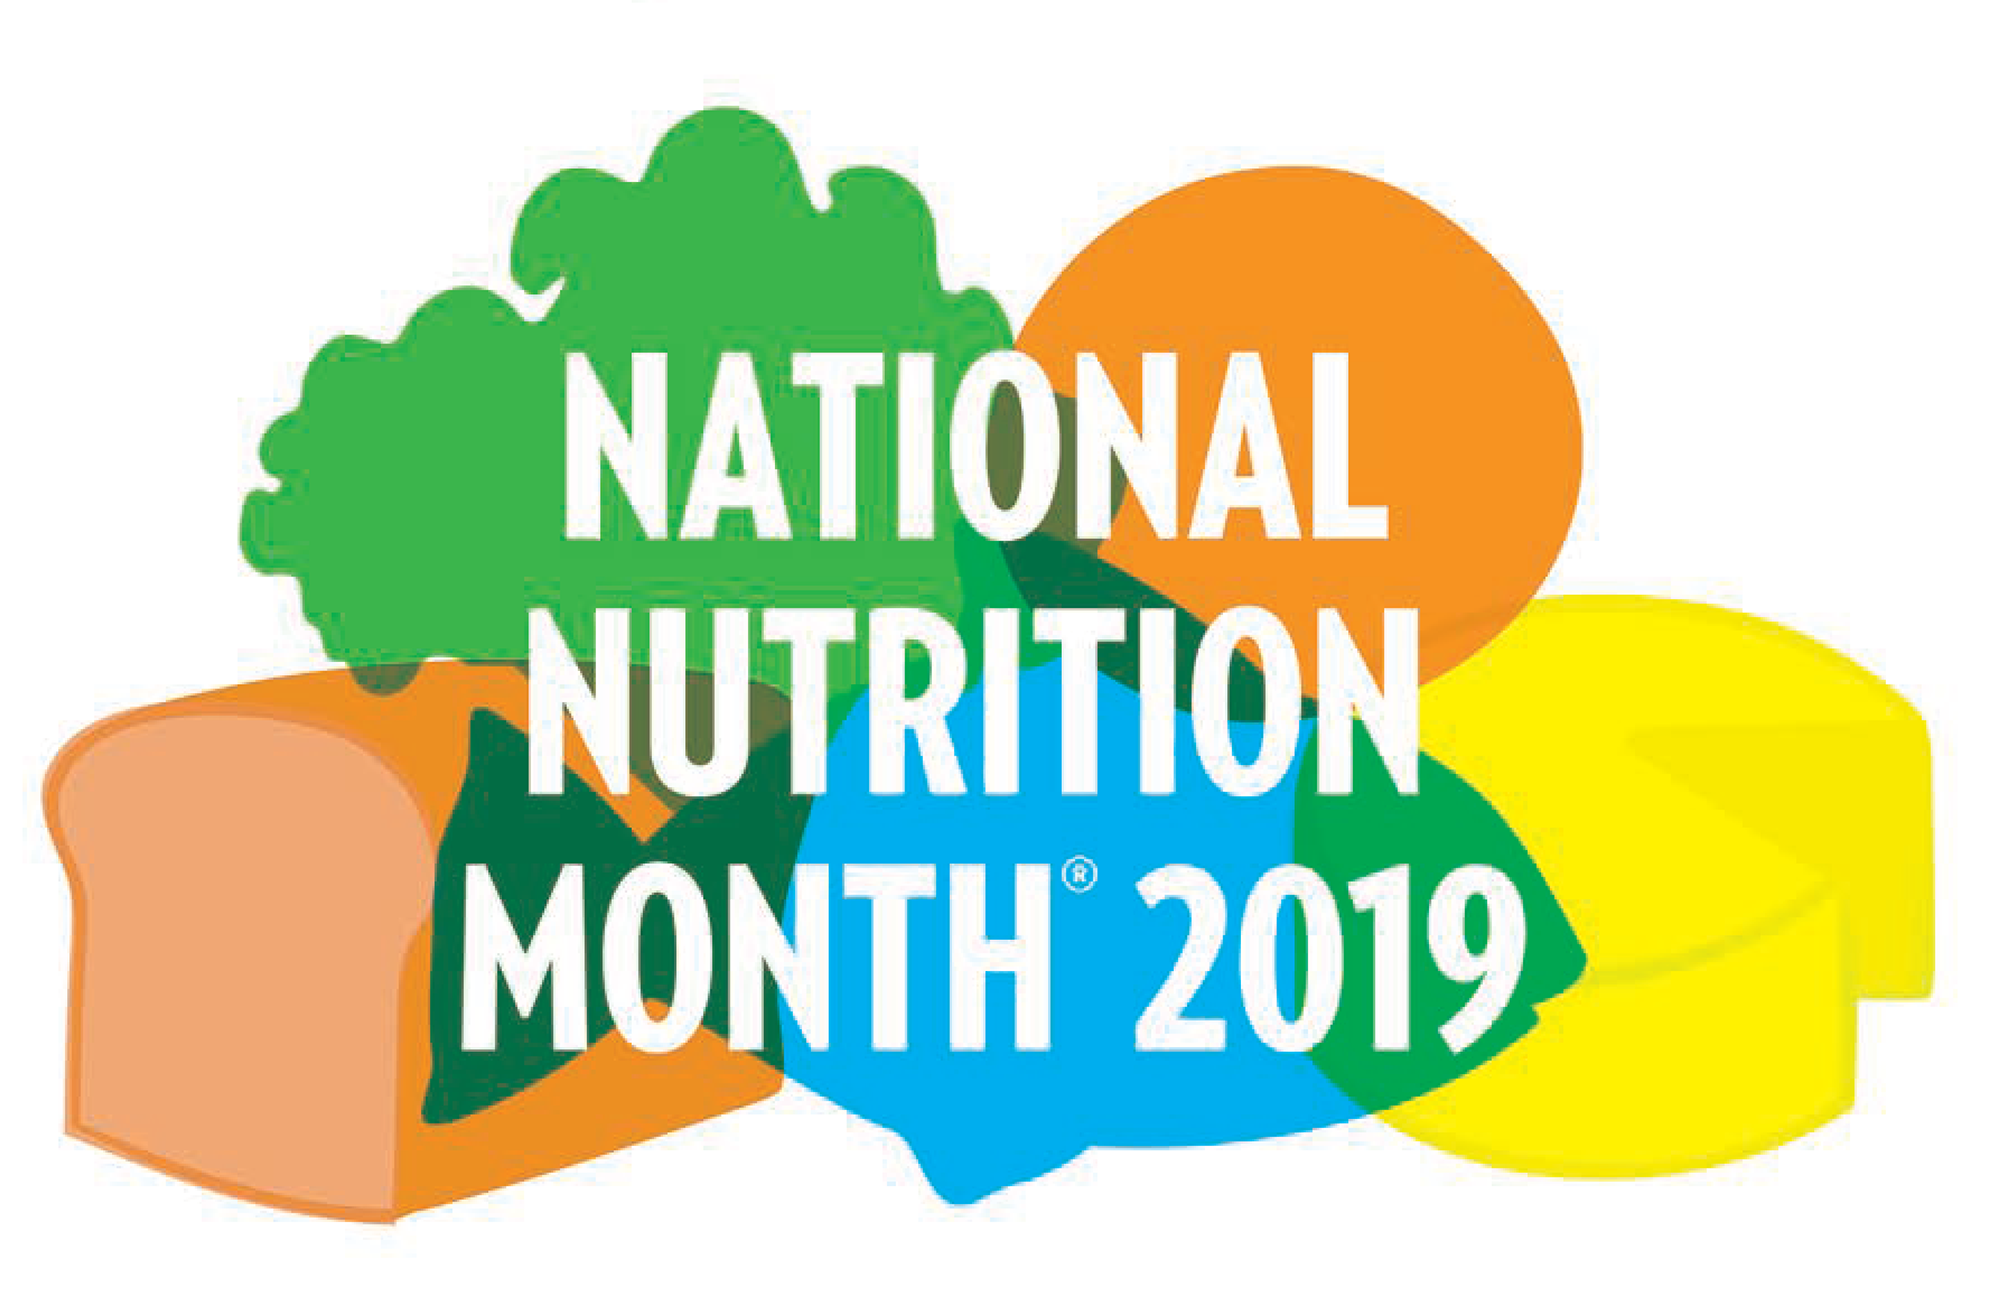 National Nutrition Month 2019